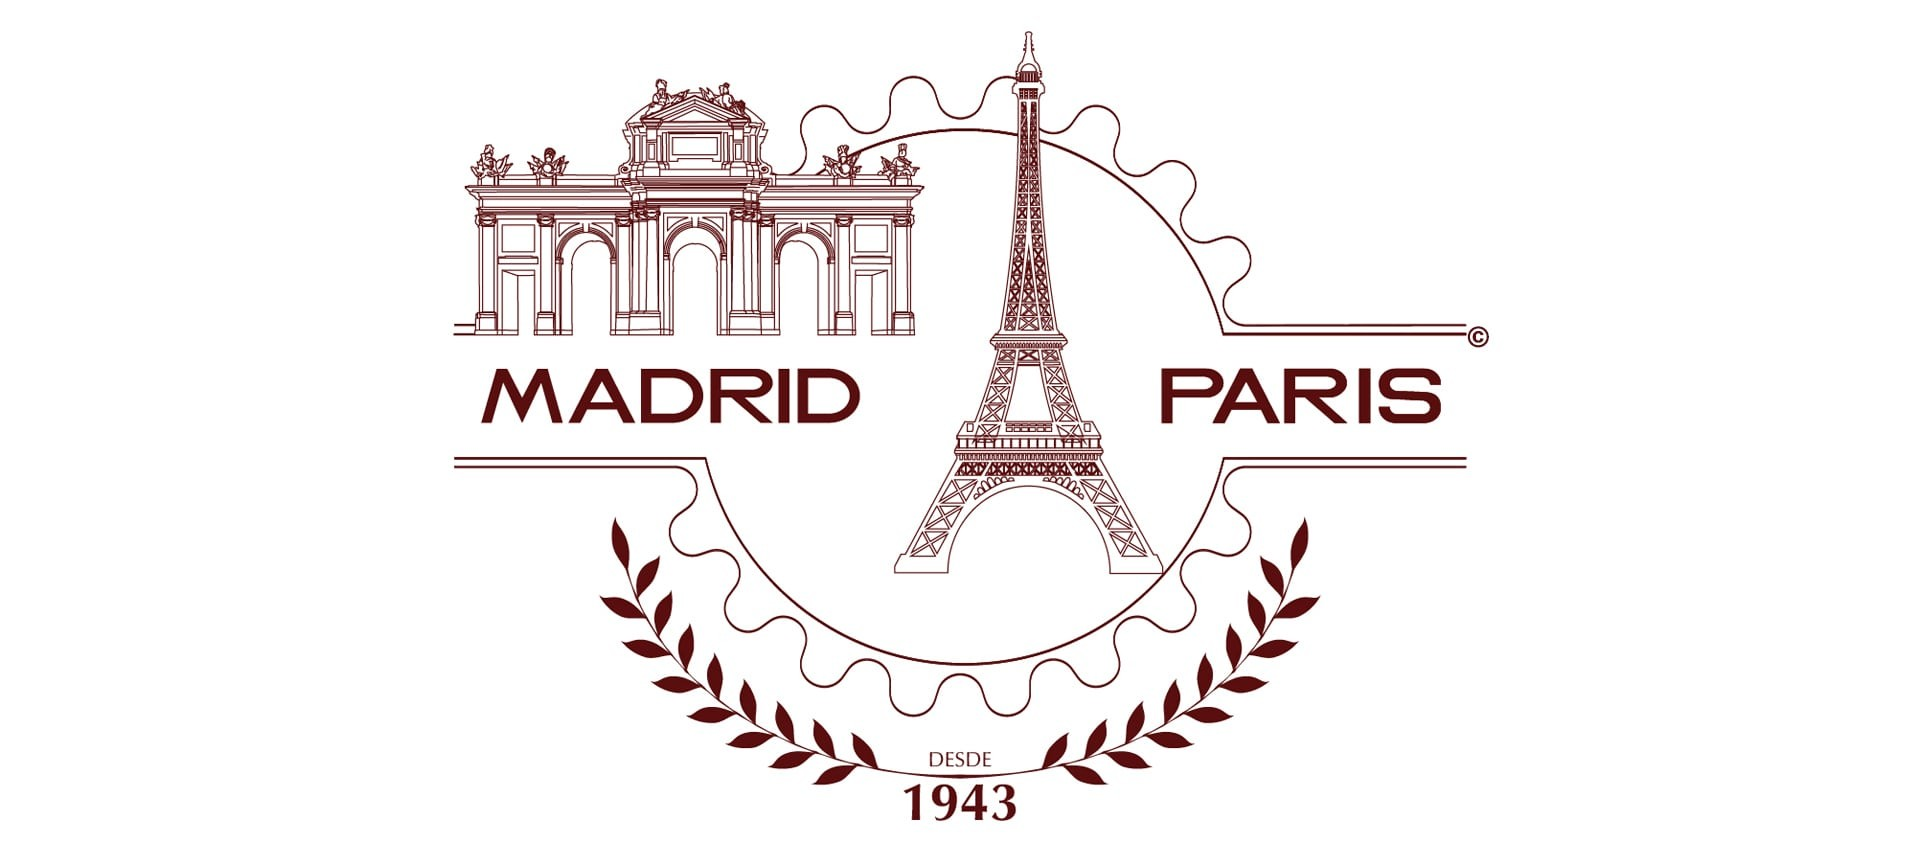 logo perfumeria madrid paris